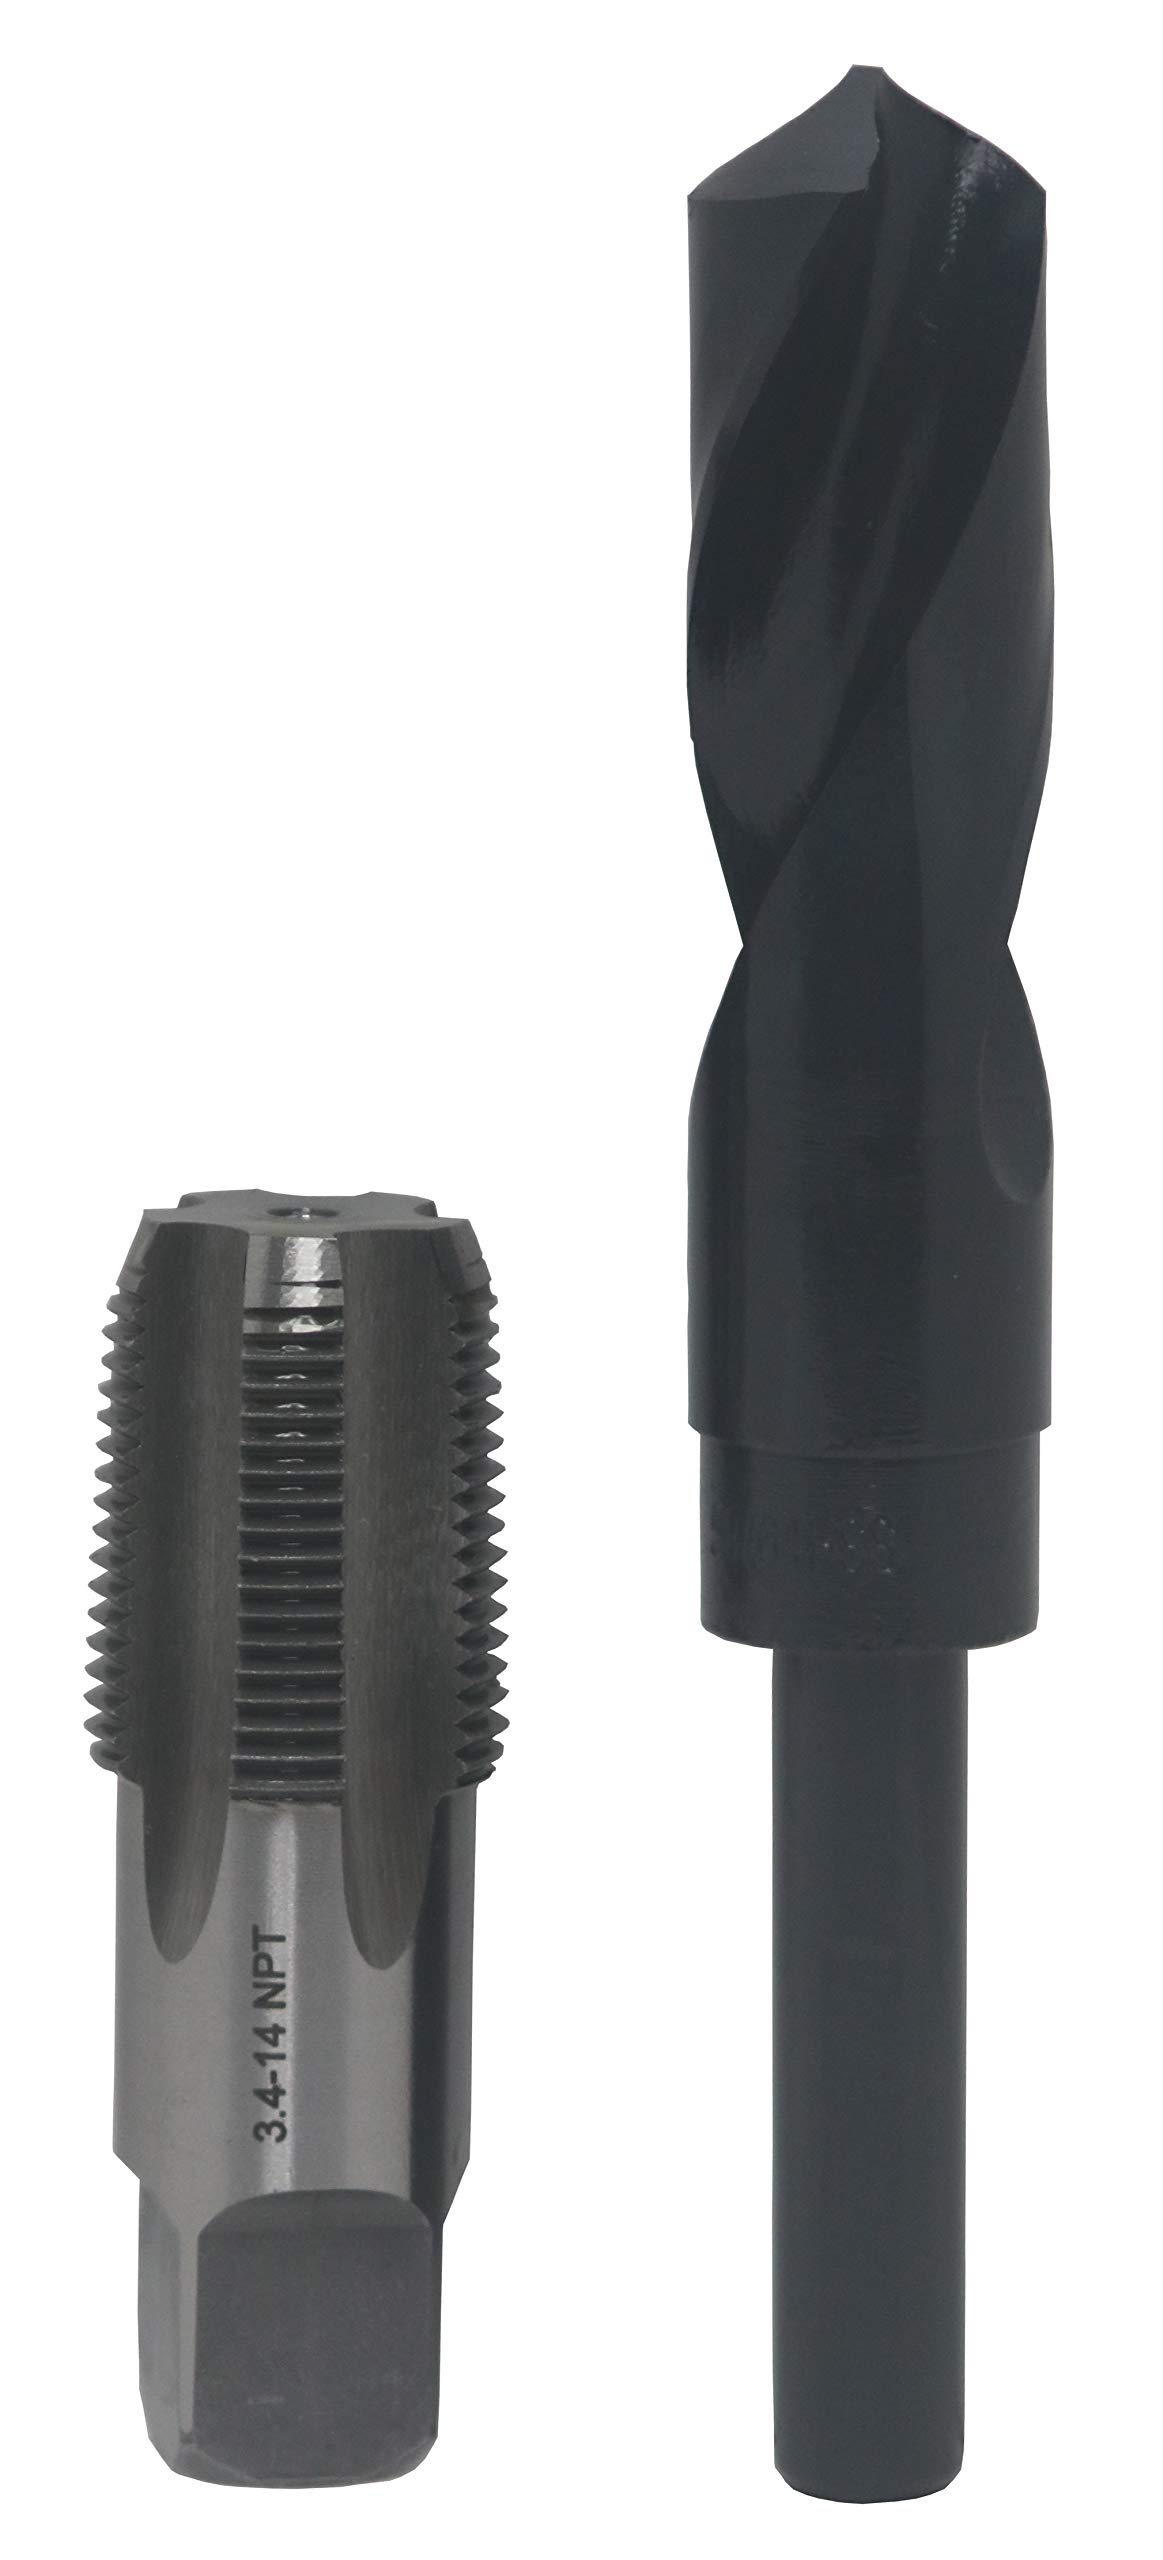 Drill America 3/4'' Carbon Steel NPT Pipe Tap and 59/64'' High Speed Steel Drill Bit Set, POU Series by Drill America